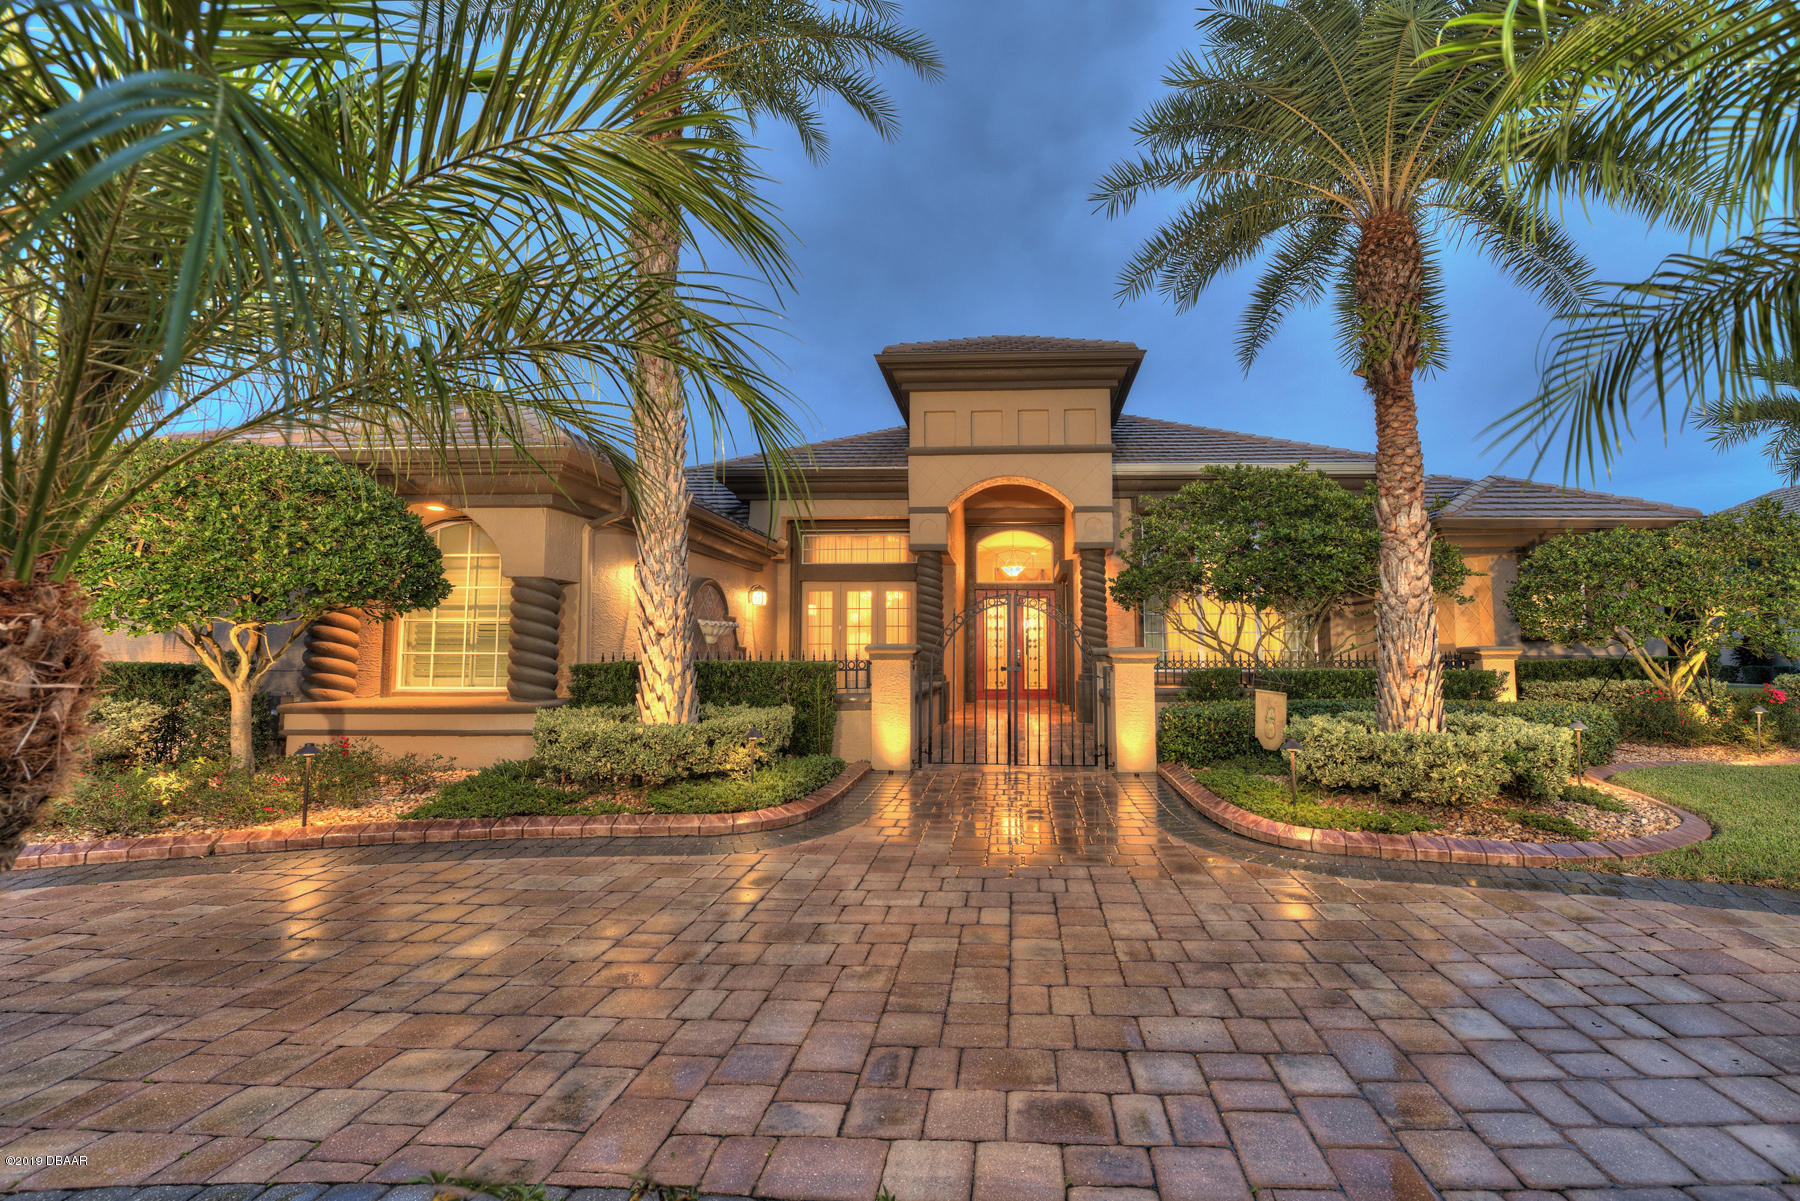 2024 King Air Court, Ponce Inlet, Florida